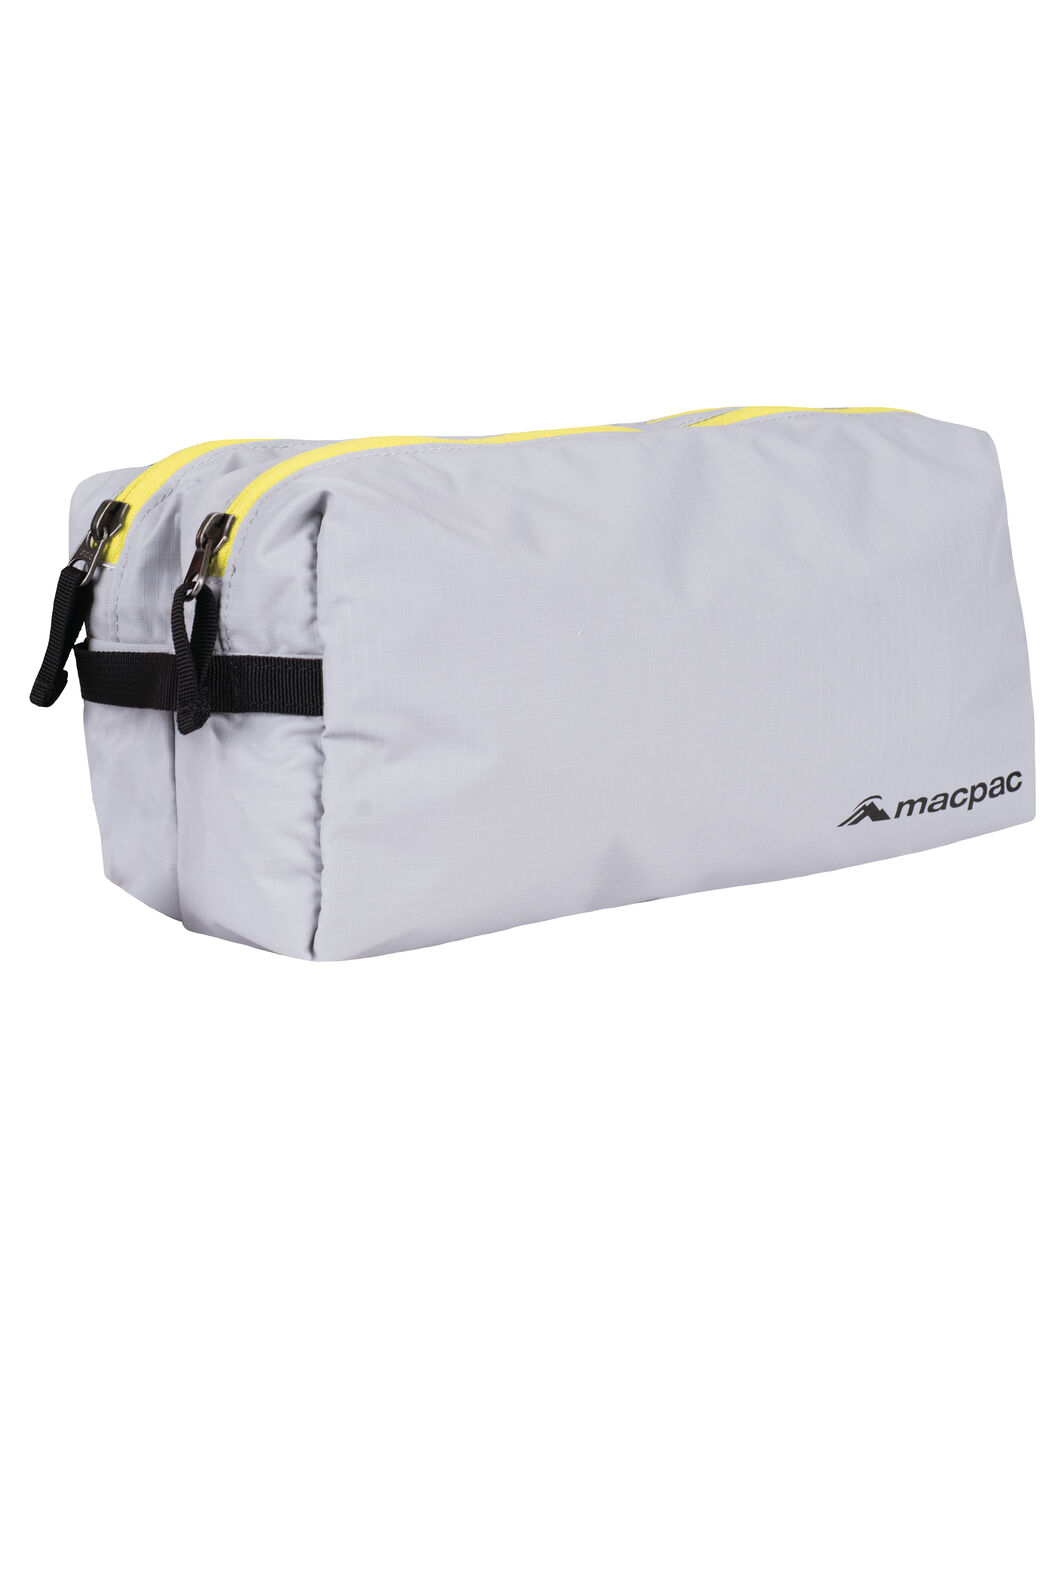 Macpac Double or Nothing Washbag, Alloy, hi-res